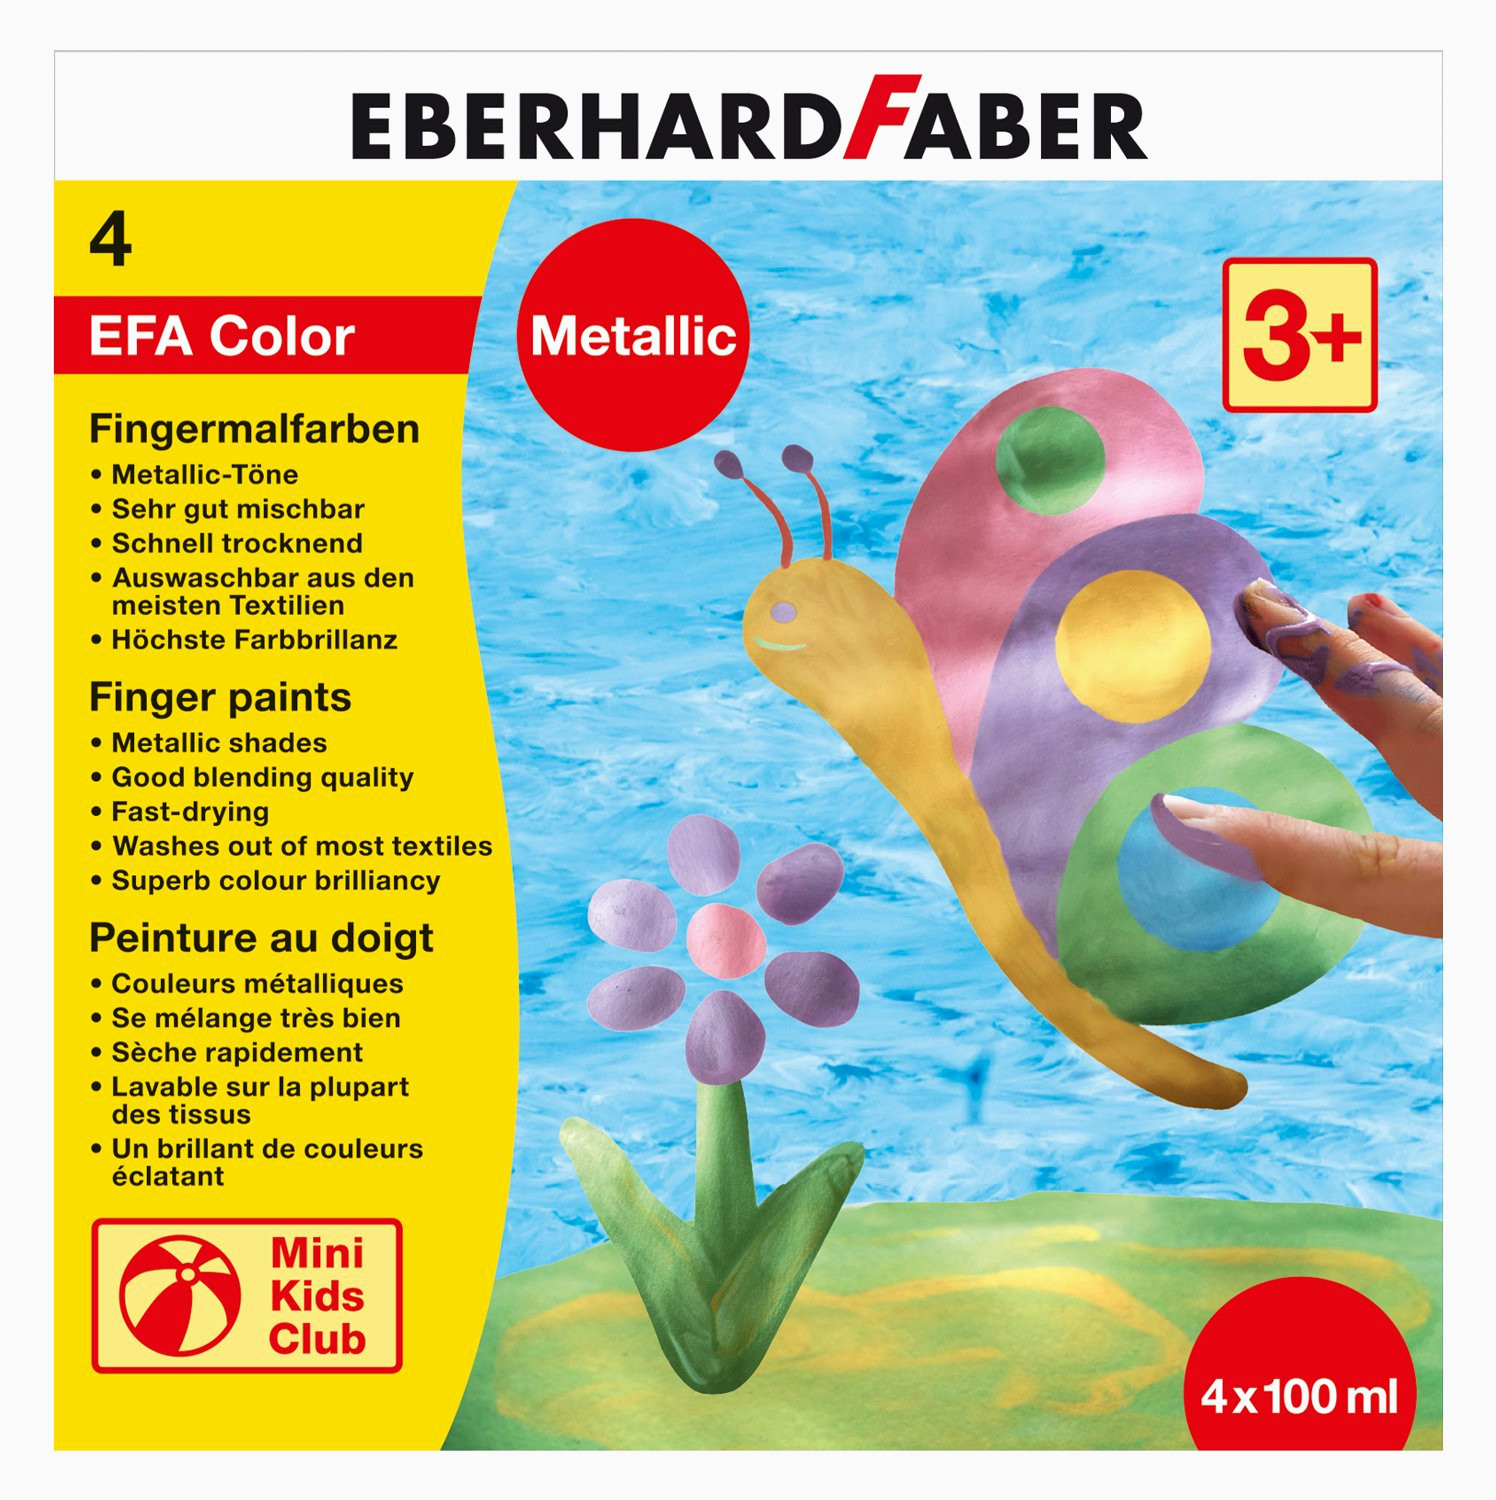 Eberhard Faber Fingerfarbe Metallic 100 ml 4er Set je